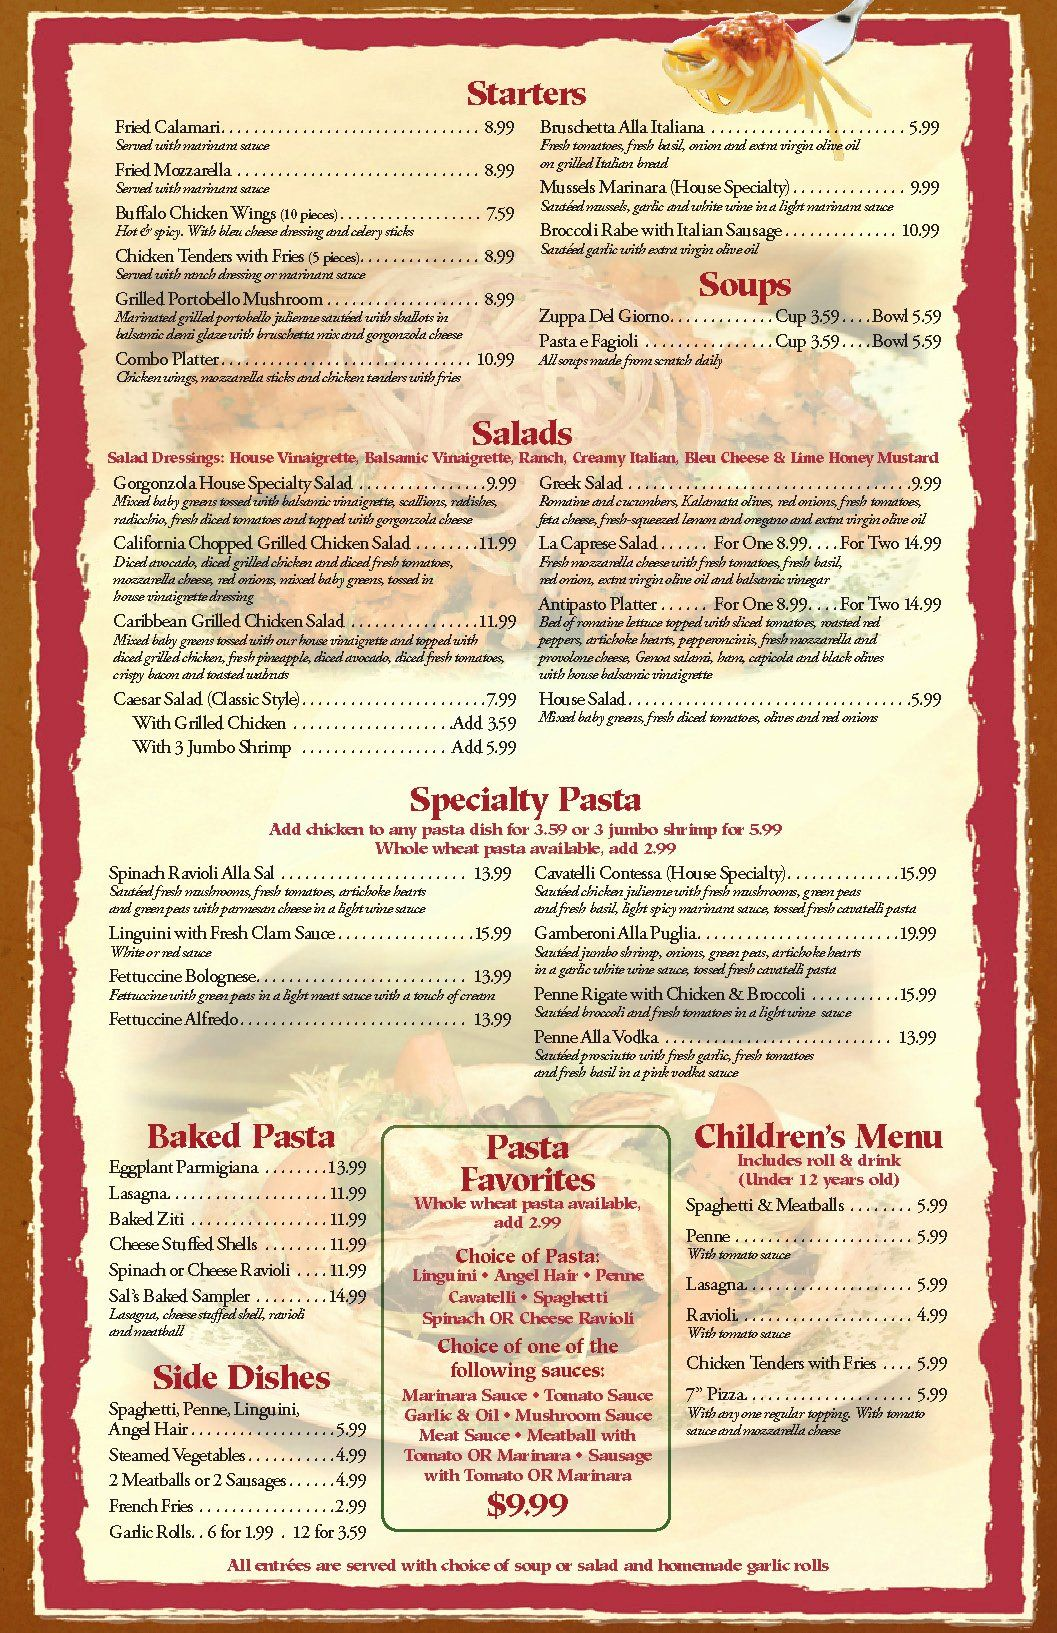 24 Catering Menu Template Free Perspicacity Online Template